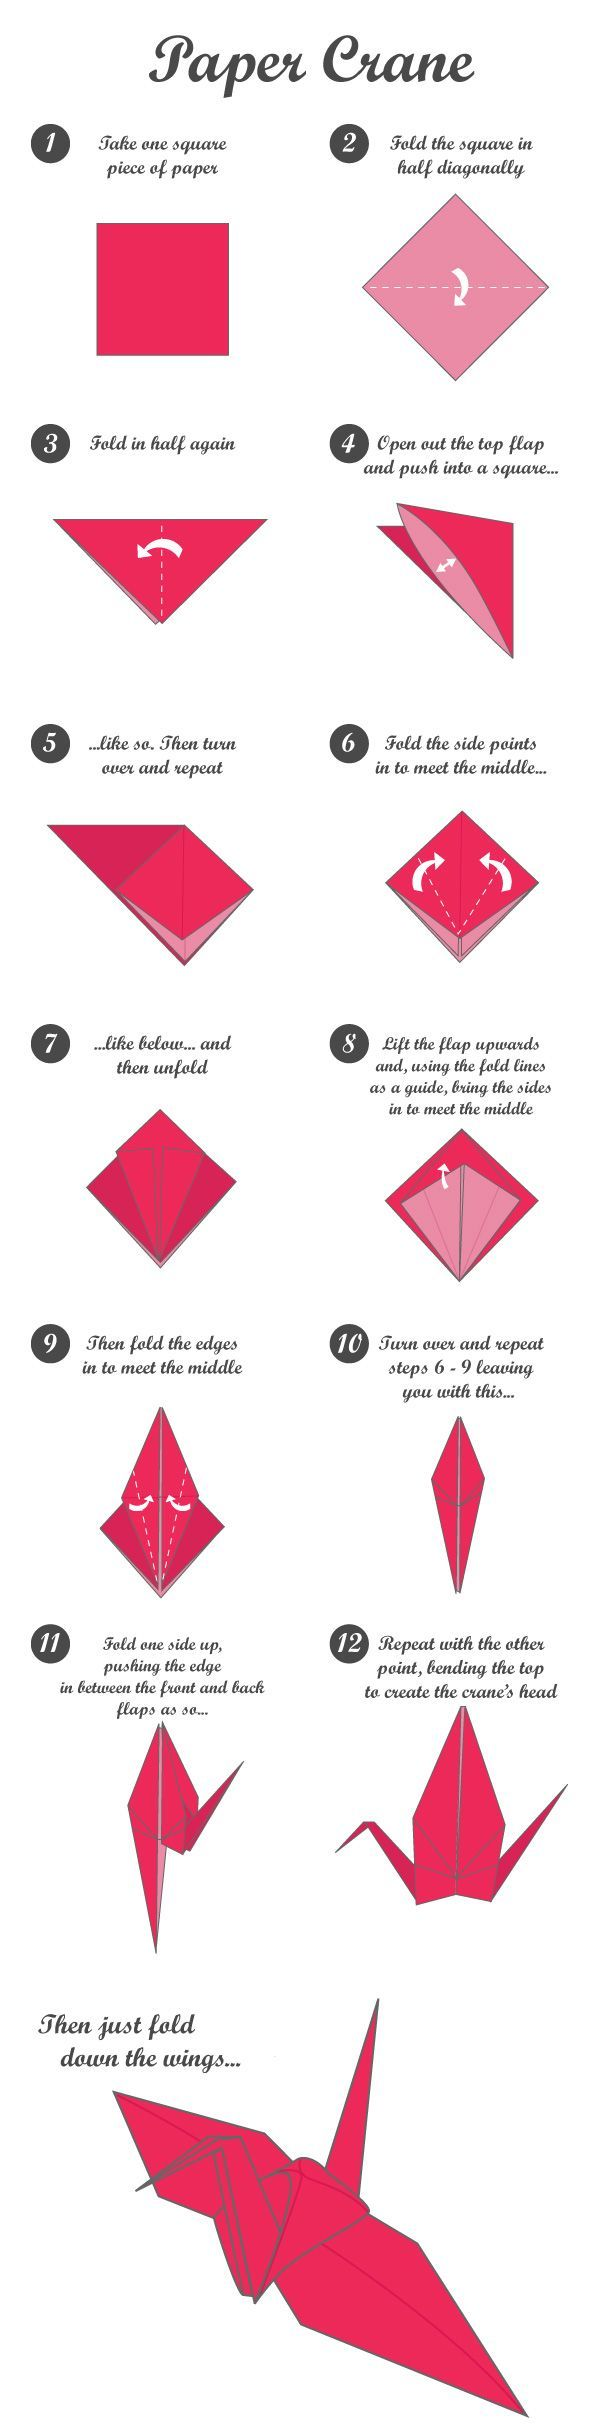 Origami paper crane tutorial, something i aspire too! I hear the crane is one of…